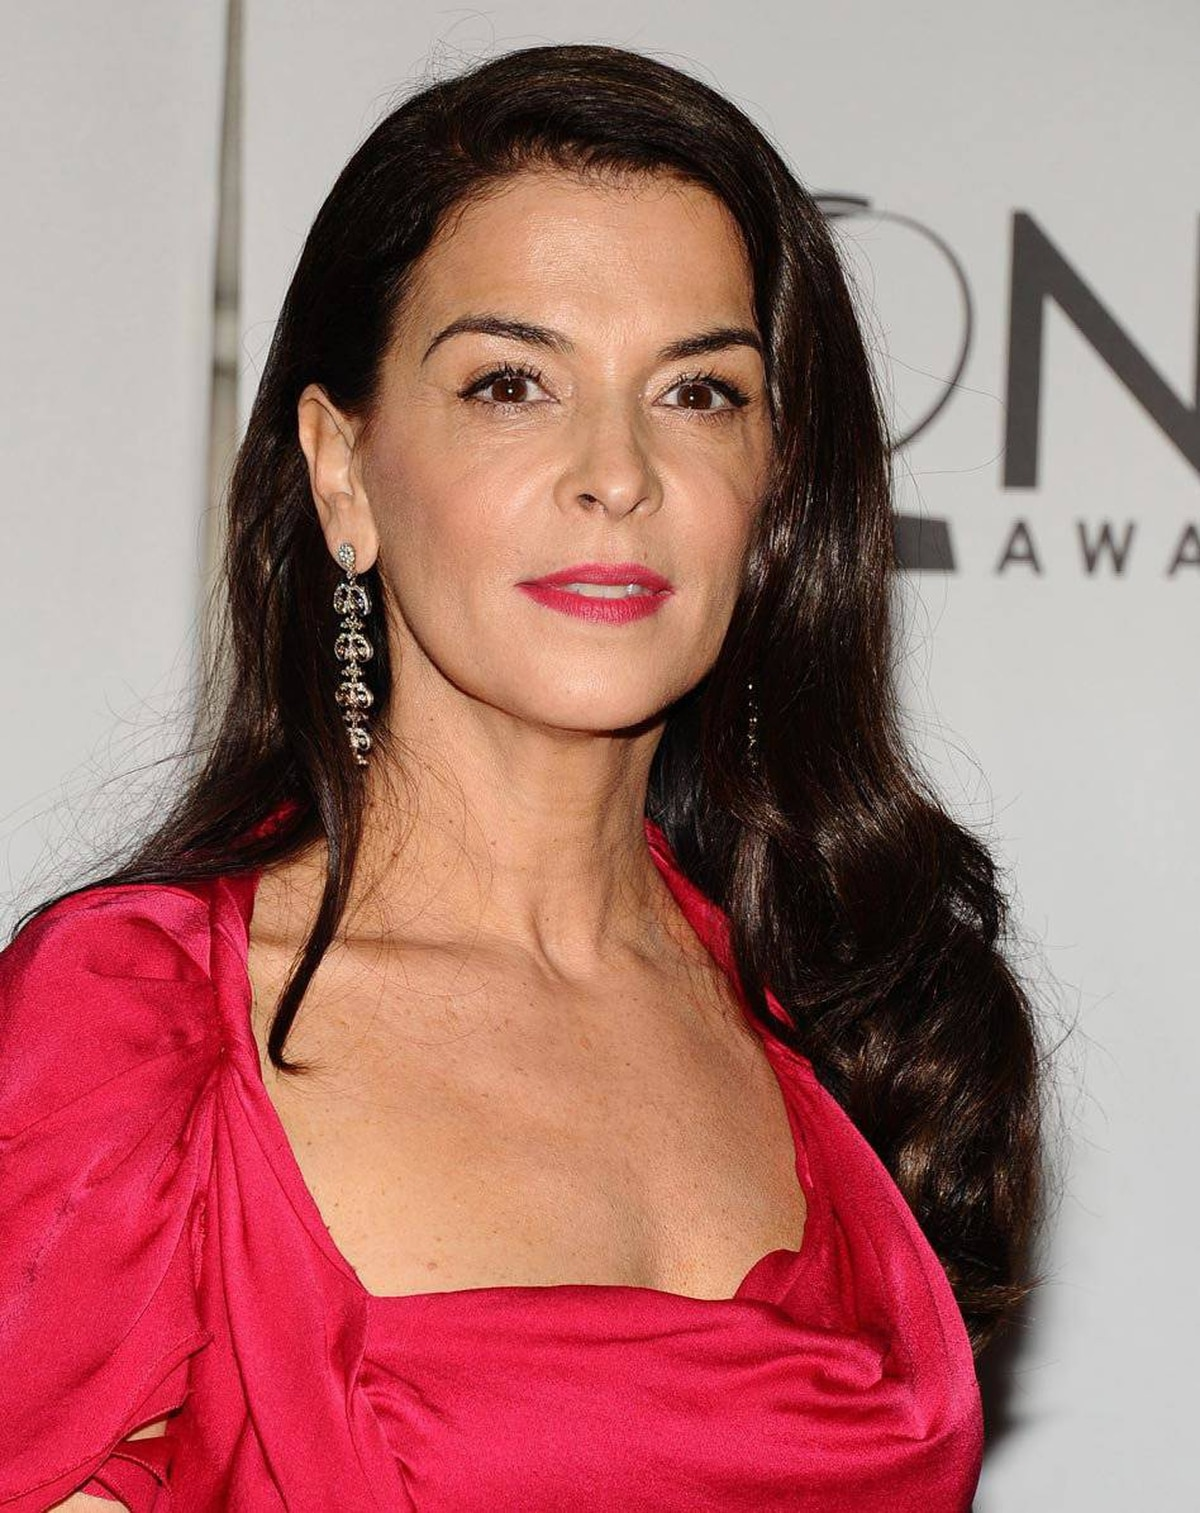 Annabella Sciorra arrives at the 65th annual Tony Awards, Sunday, June 12, 2011 in New York.